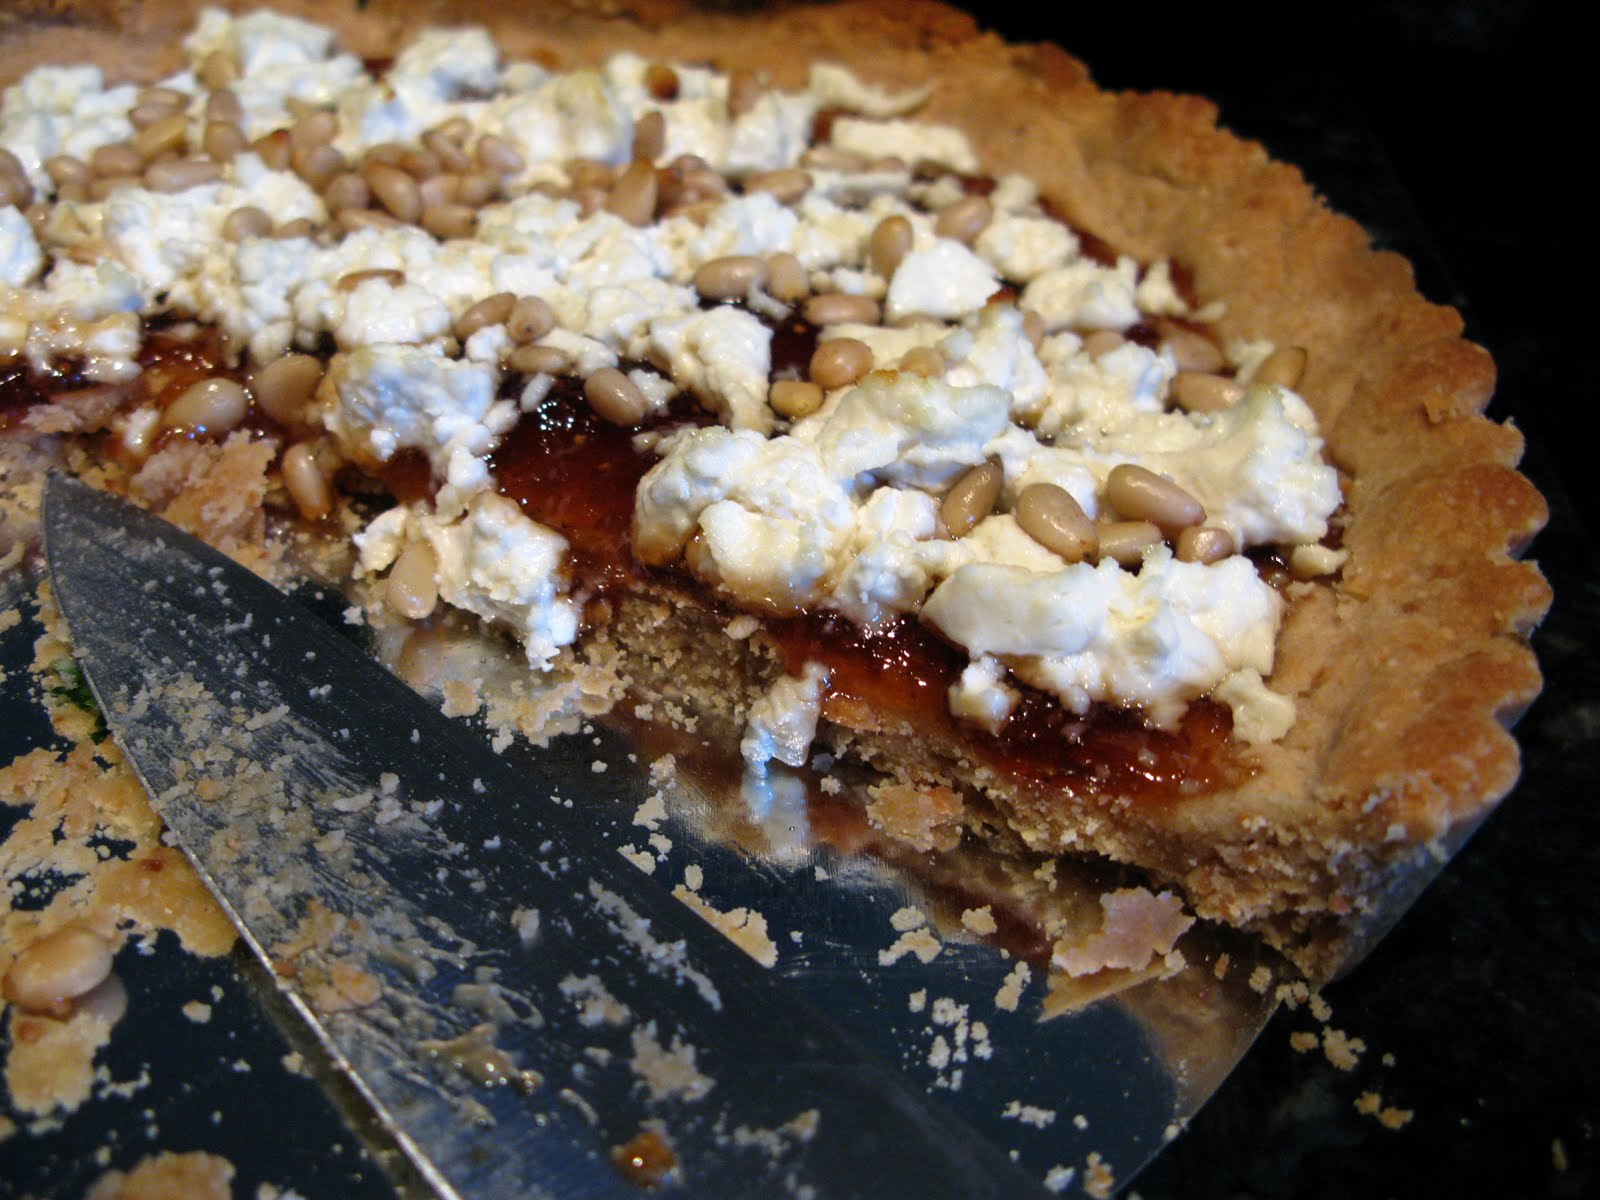 ... that and she cooks, too: Fig and goat cheese tart with arugula salad